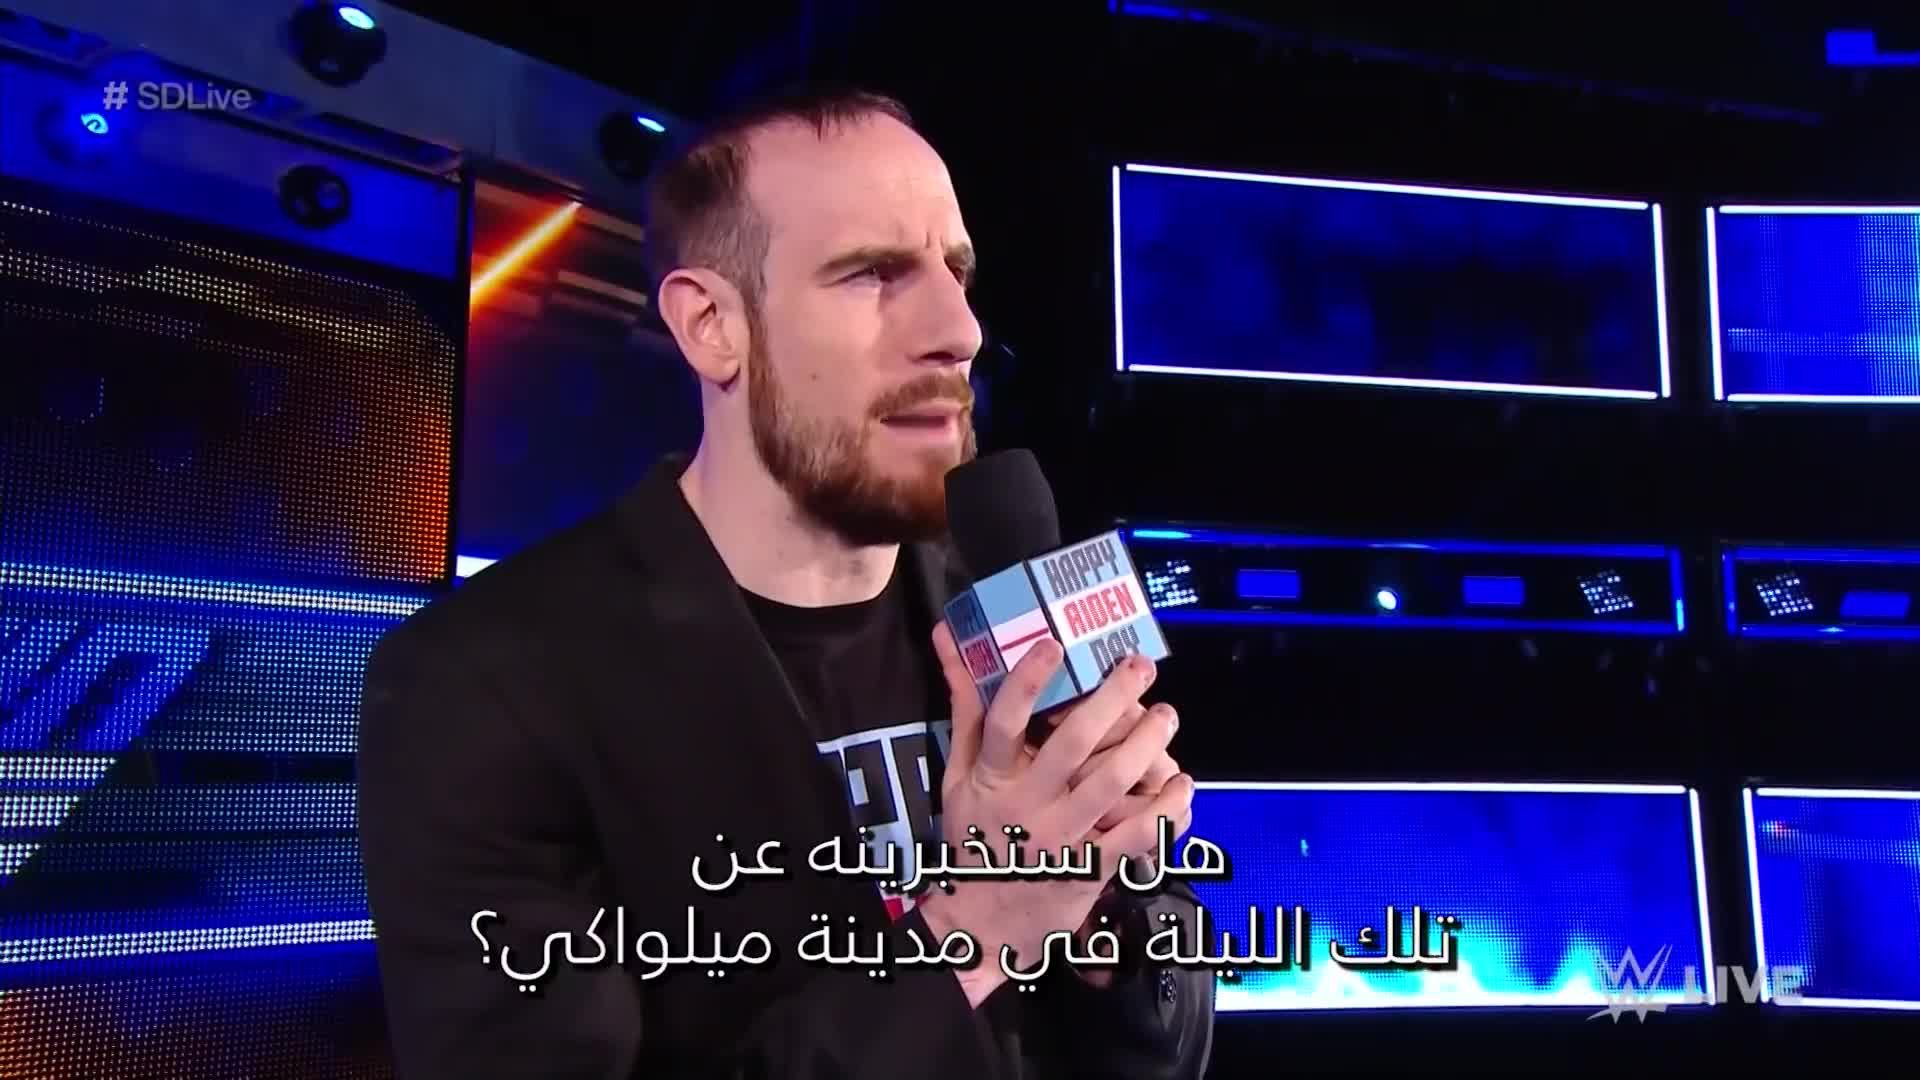 Why Aiden English attacked Rusev: Wal3ooha, 27 September, 2018